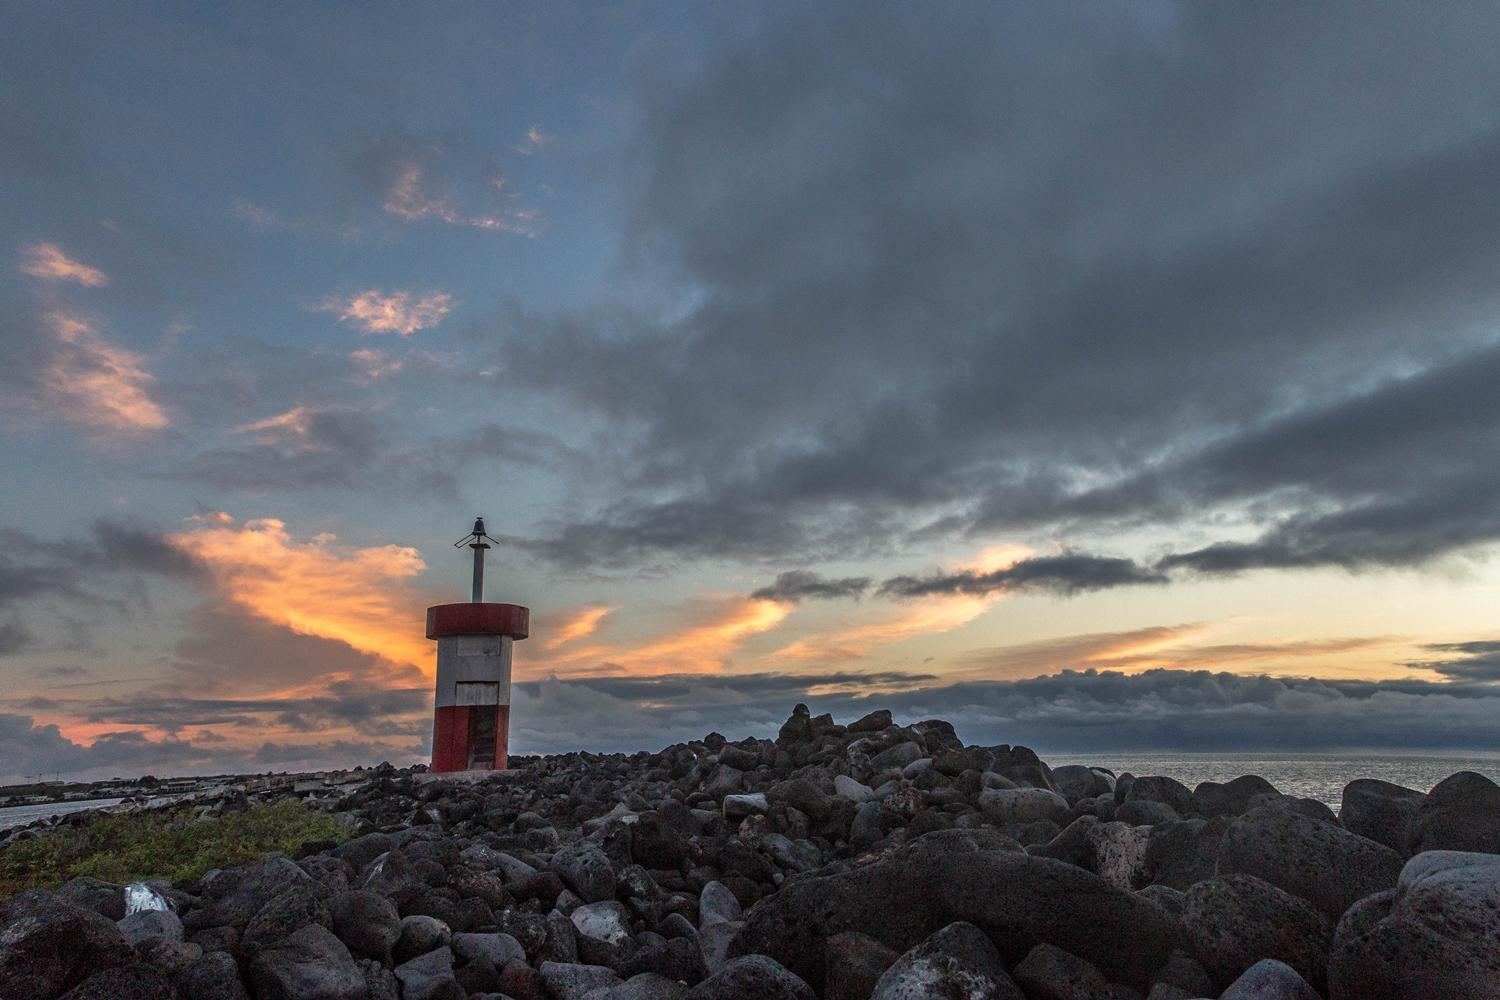 Sunset behind the lighthouse of Punto Carola on San Cristobal Island